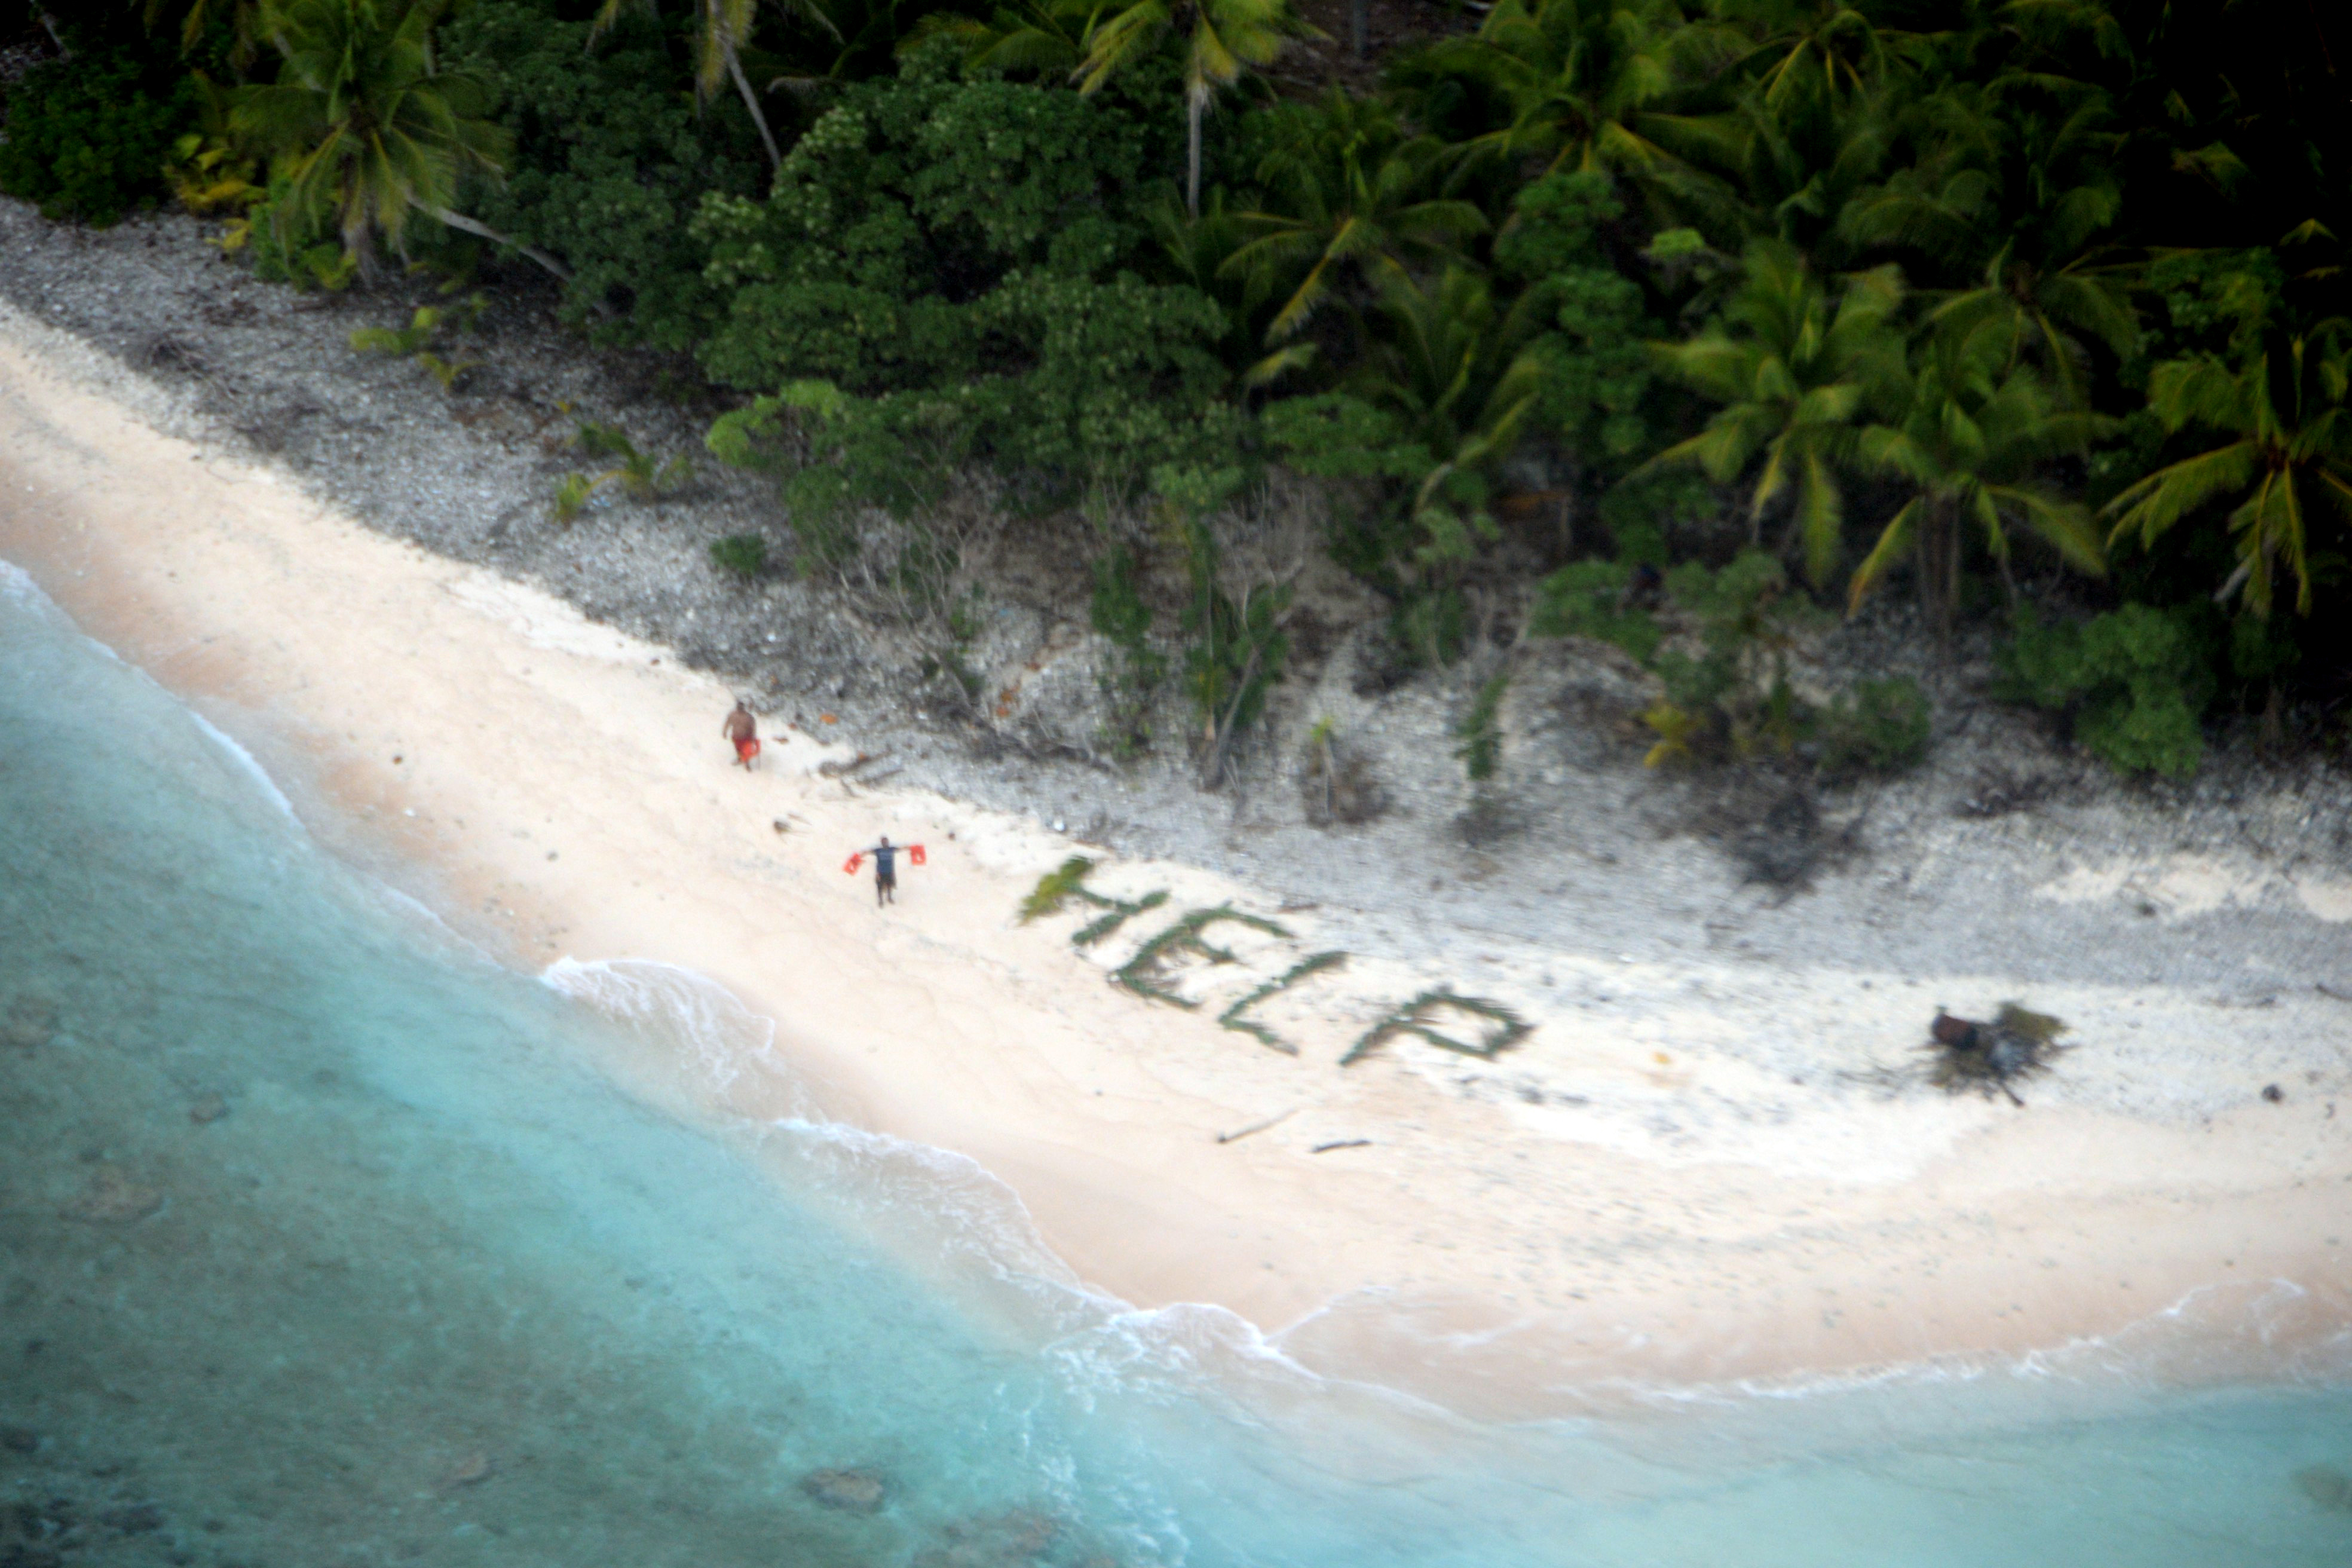 'Animal Planet' Film Crew Saves Real-Life Castaway Who Was 'Ready to die' on Australian Island